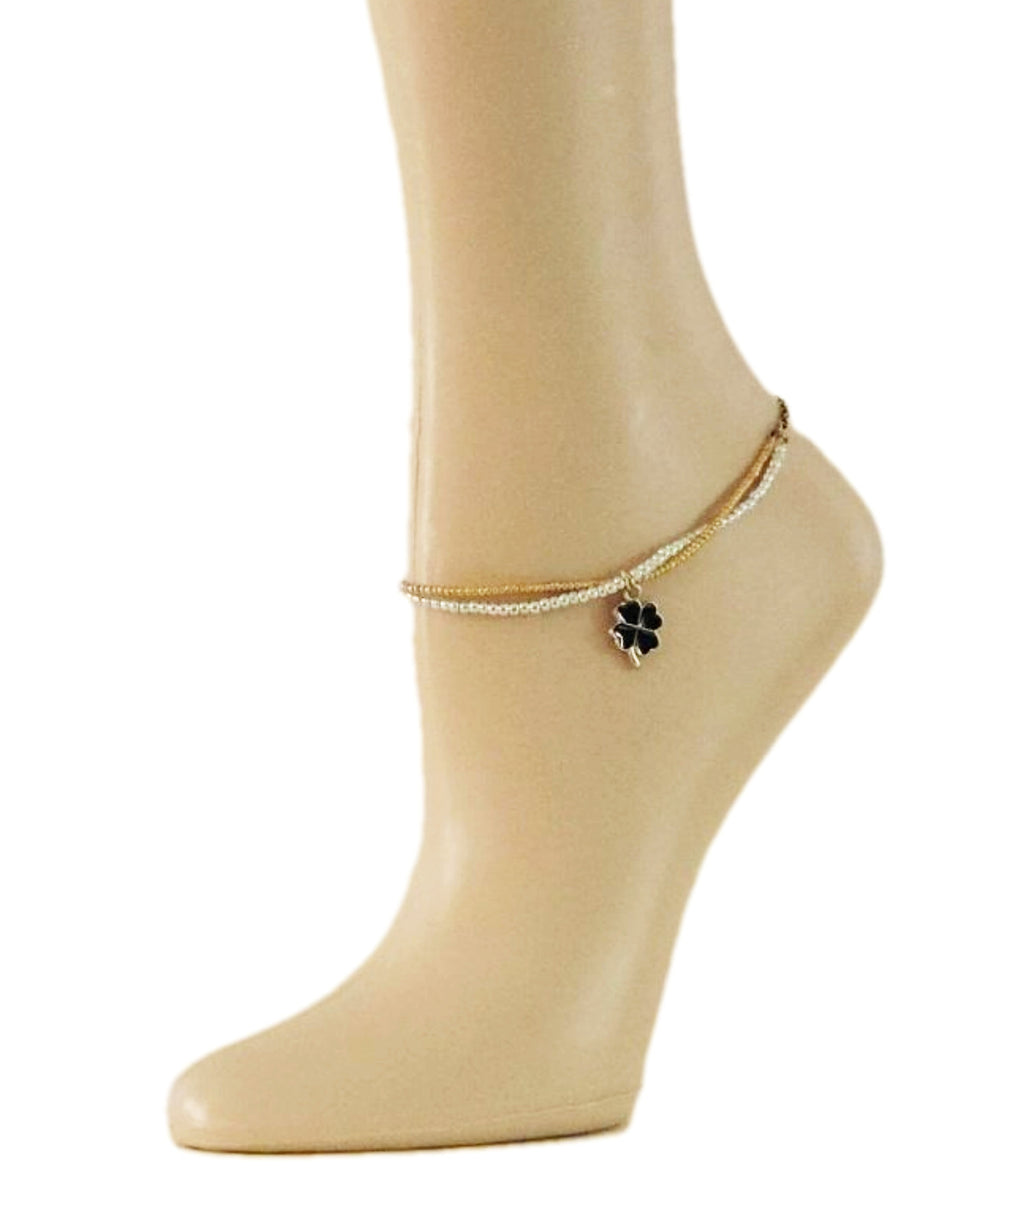 DIY Valencia Anklet - Global Trendz Fashion®